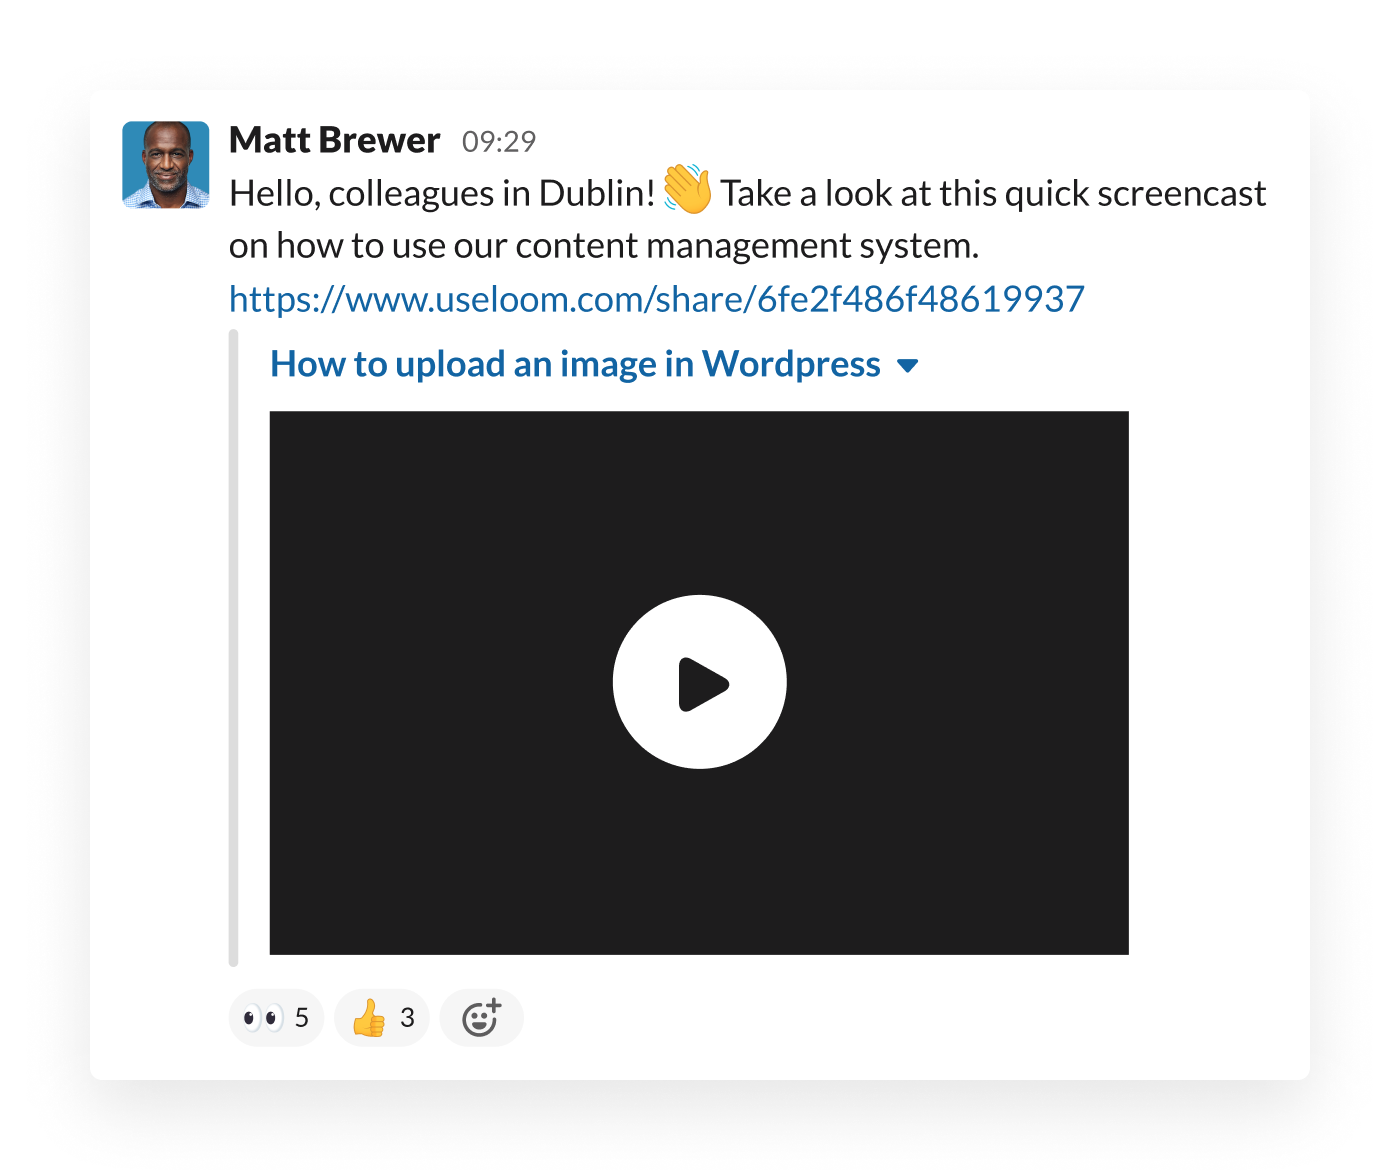 An employee shares a Loom video in Slack to demonstrate how to use the team's content management system